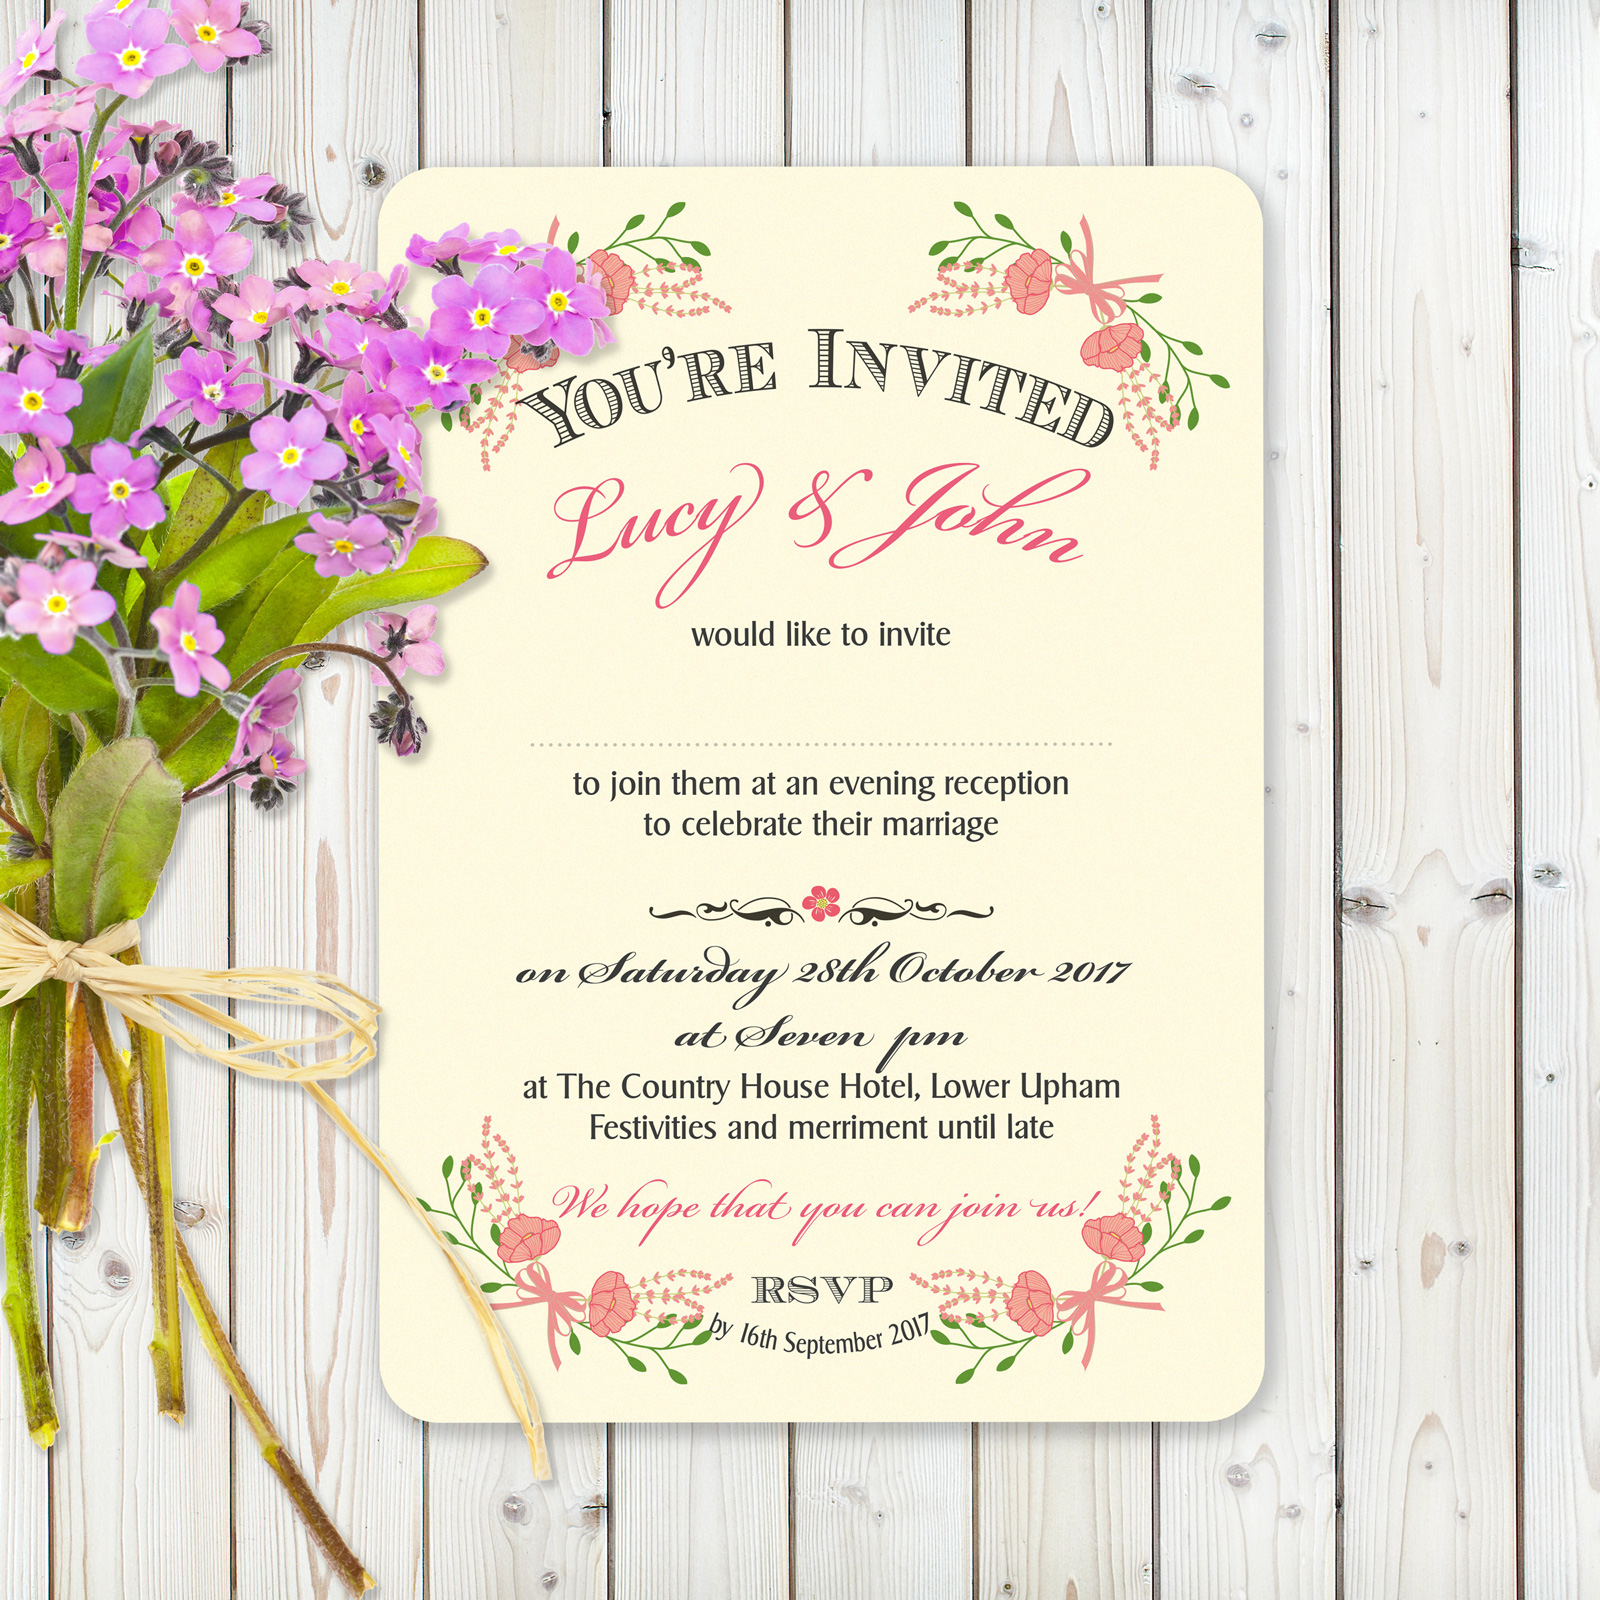 Floral Fantasy Pink on Ivory Card - Evening Invitation